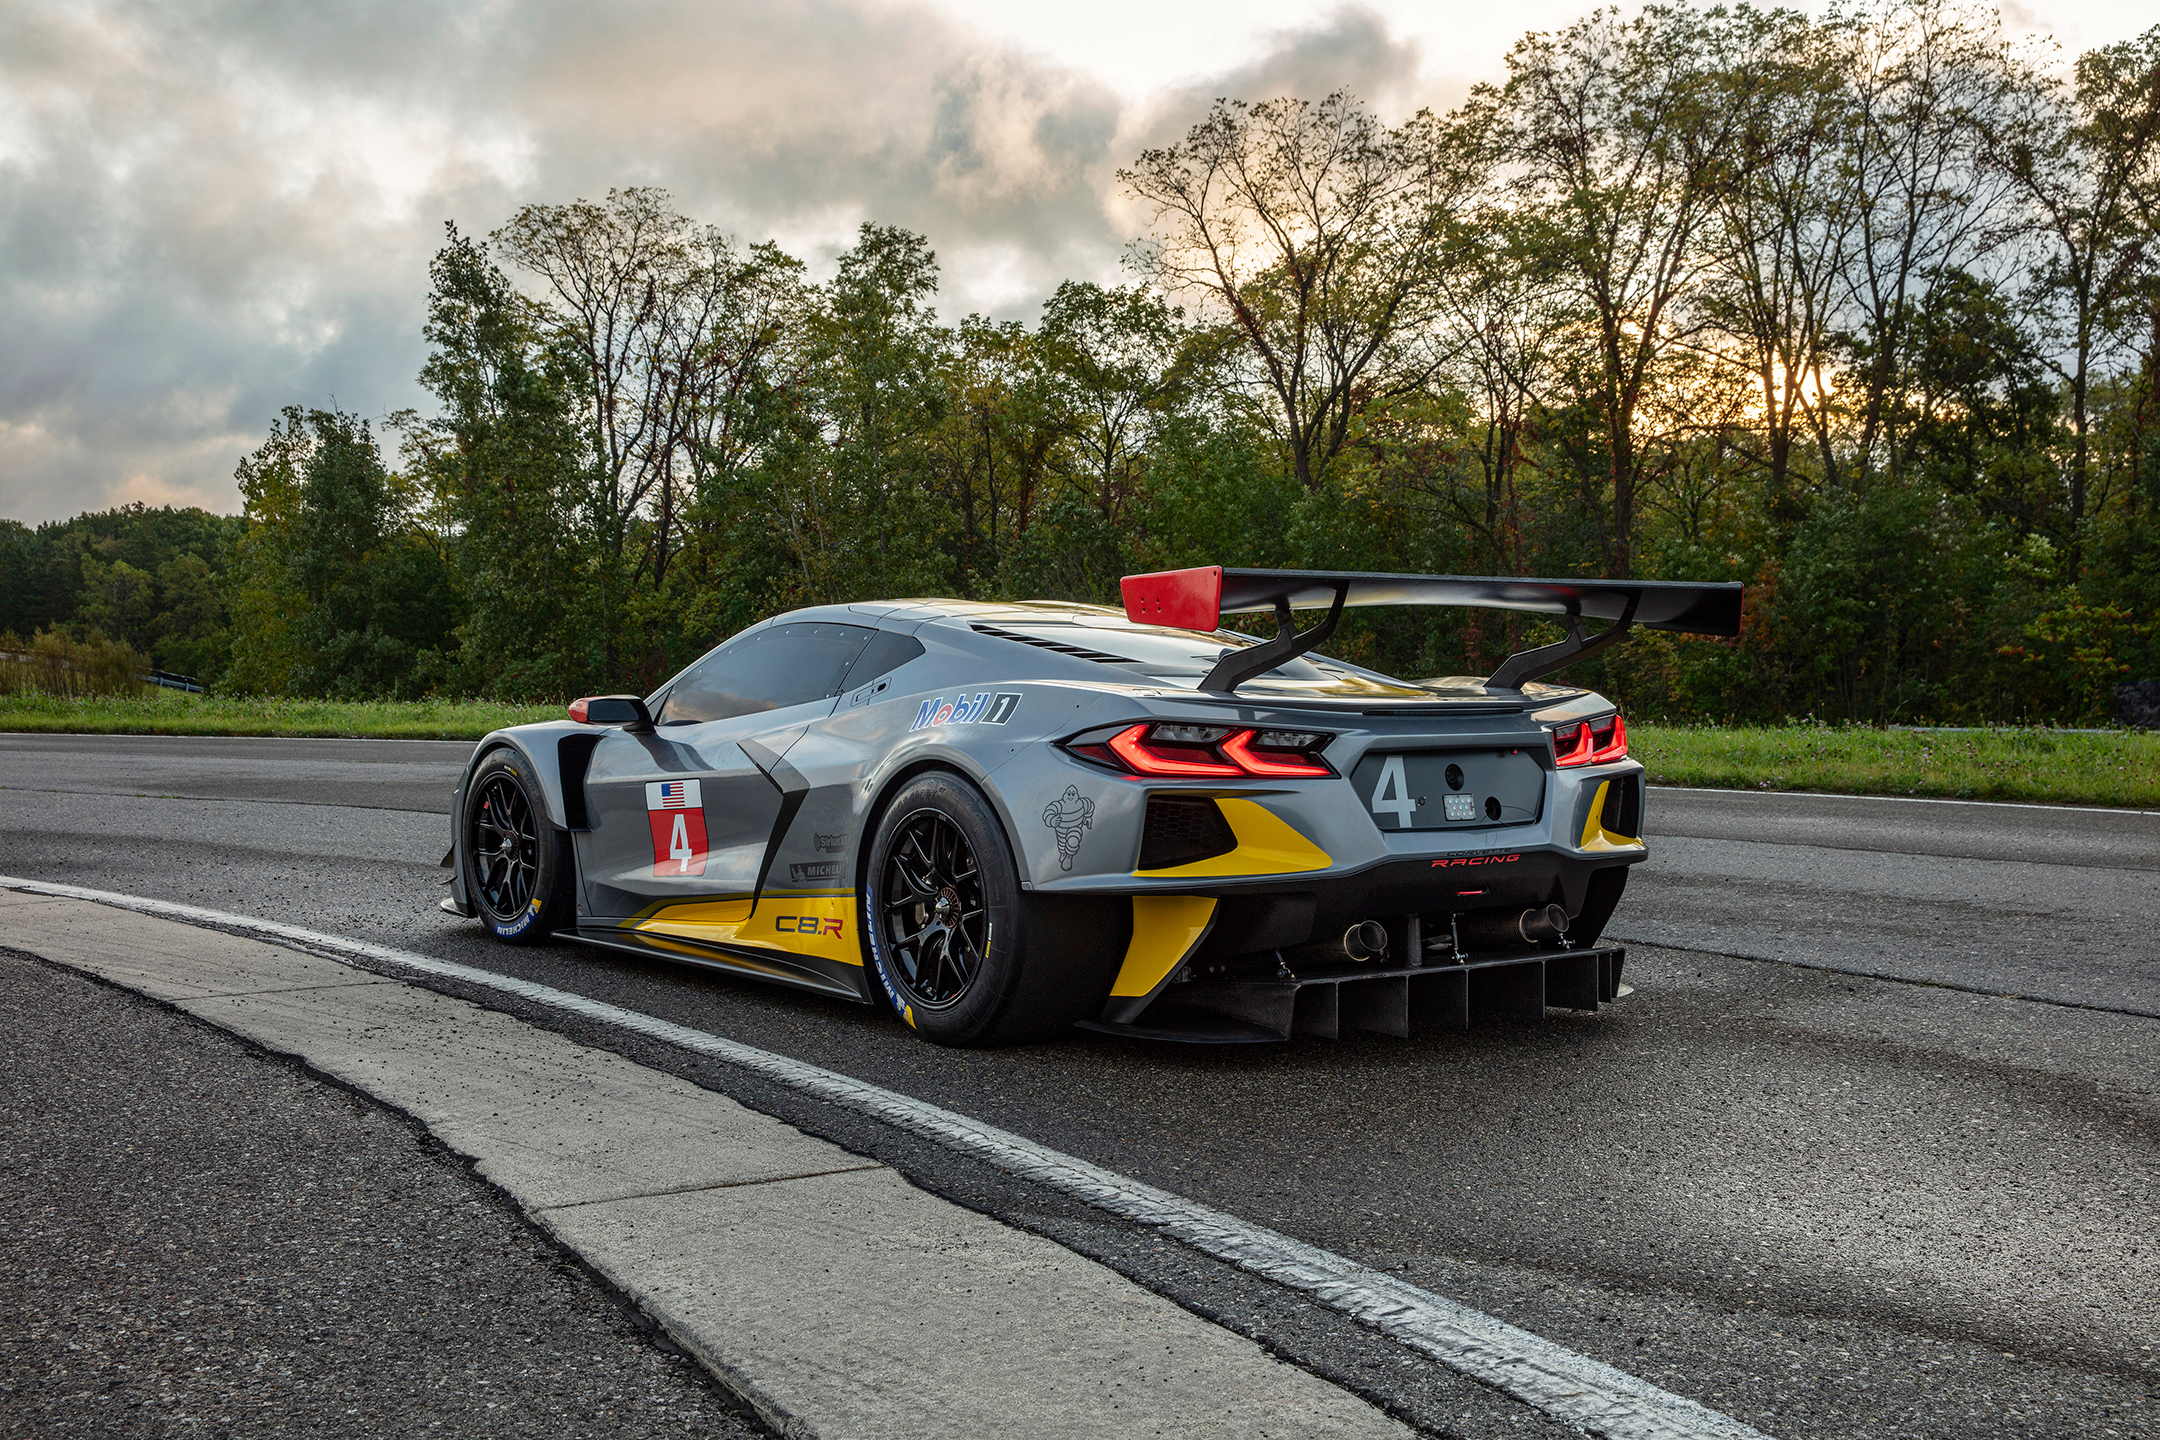 Chevrolet Corvette C8.R - 2019 - rear side-face / profil arrière